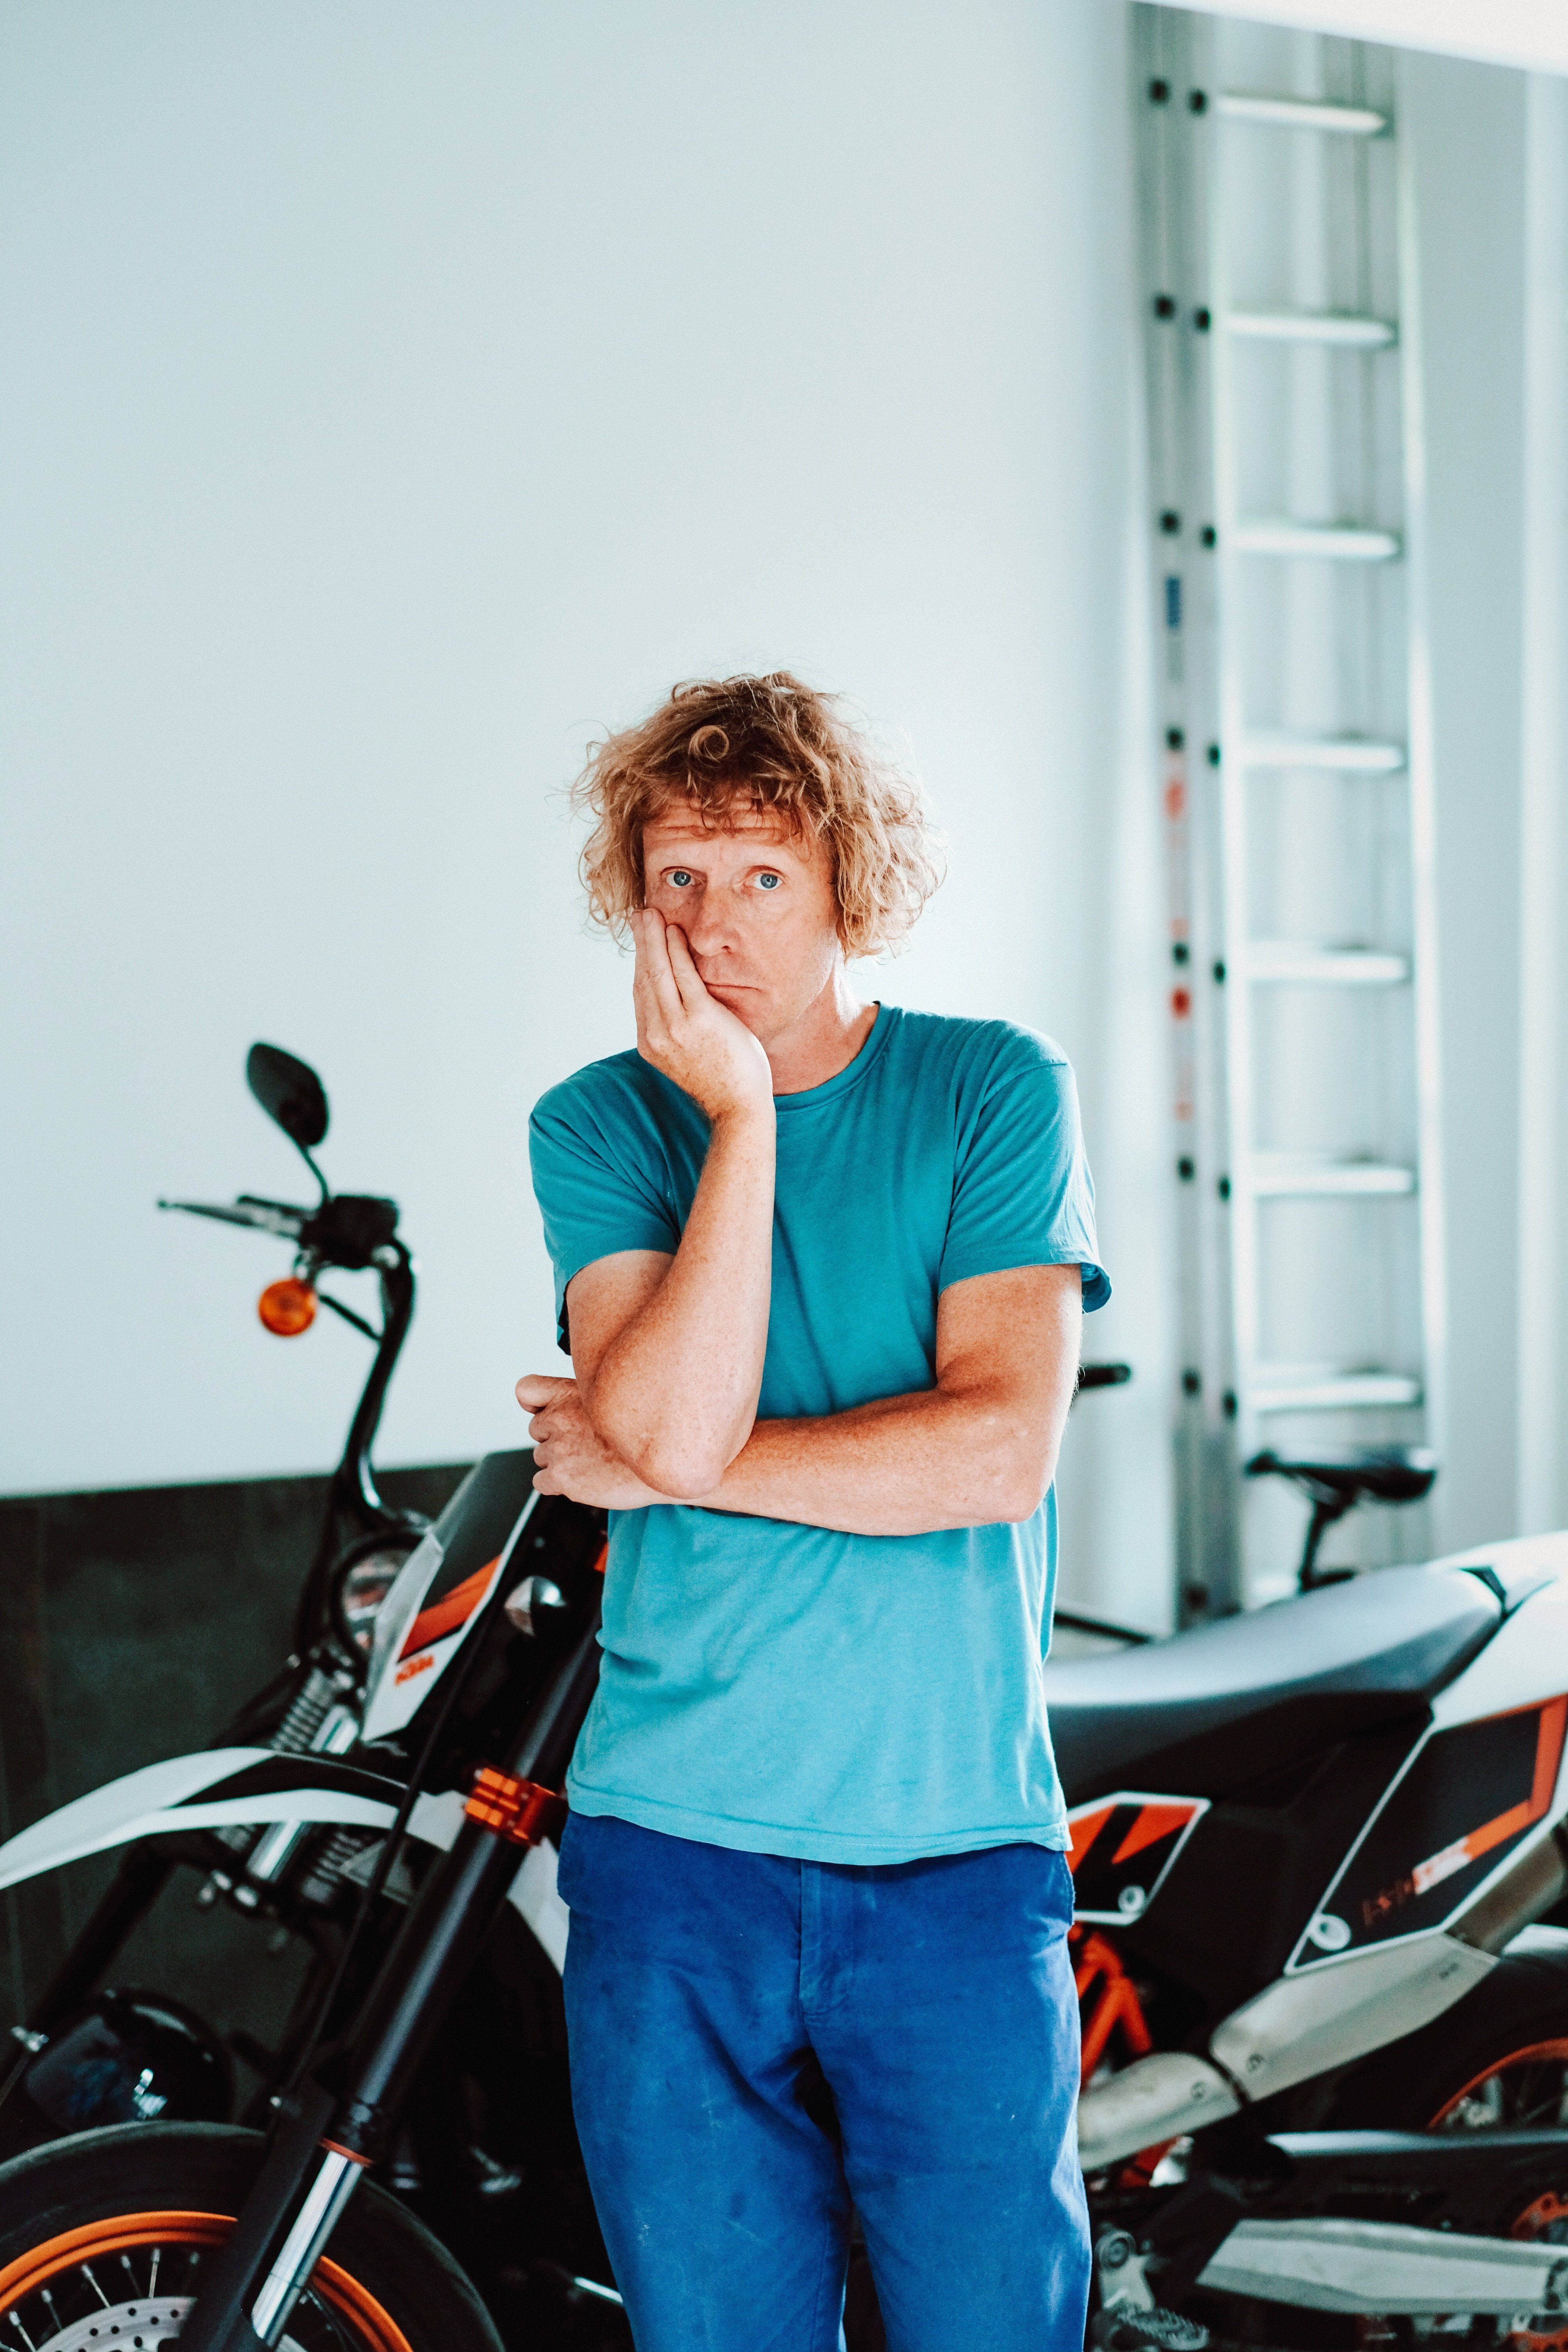 Grayson Perry On Why Old-School Masculinity Is Man's Greatest